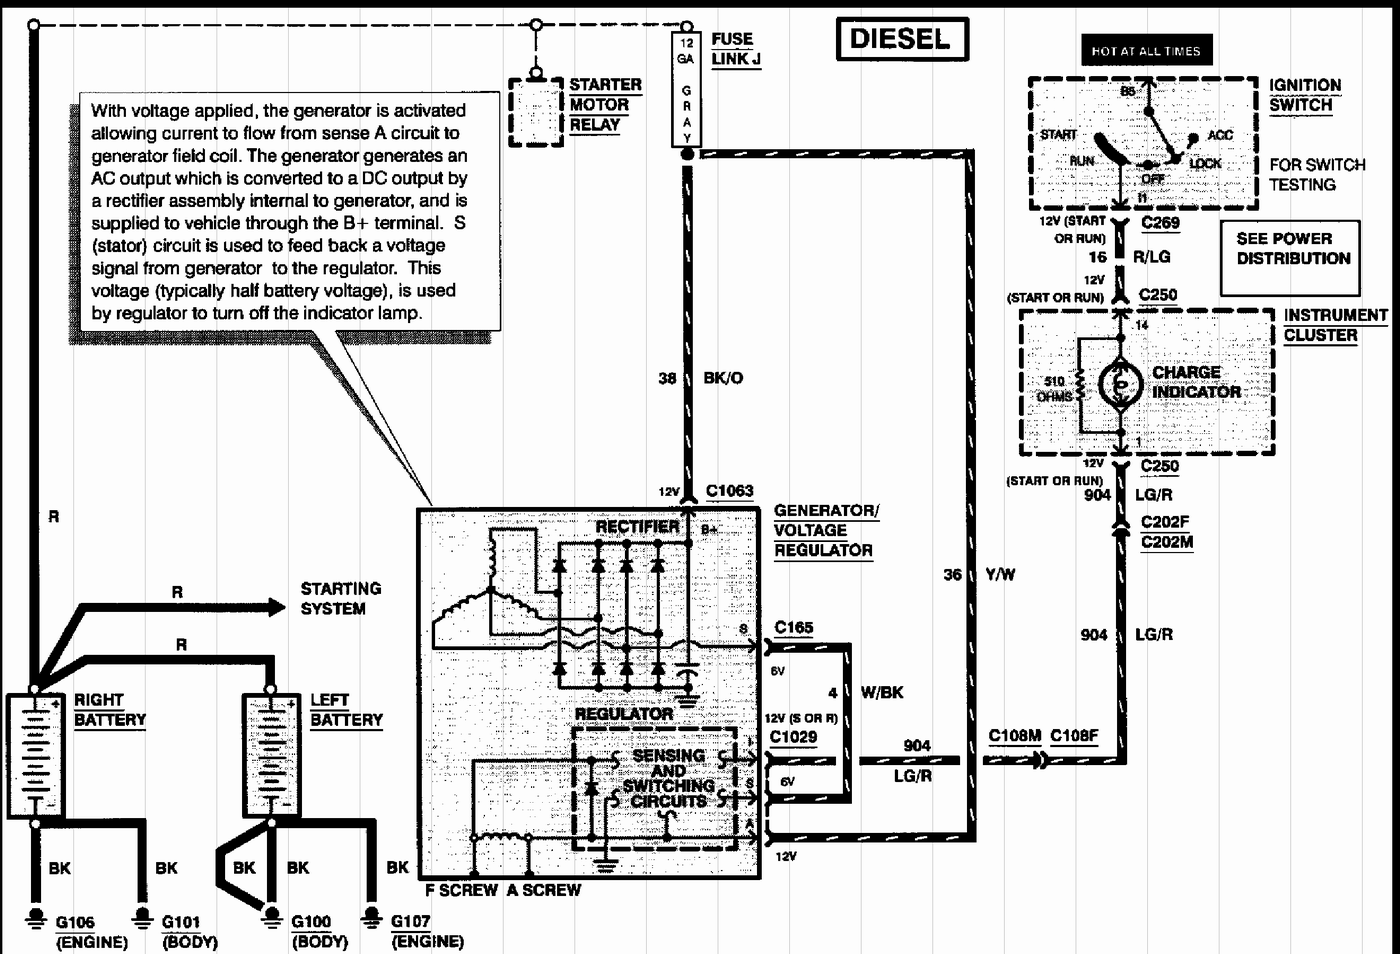 i need a wiring diagram for a 97 f350 7 3 powerstroke with  i need a wiring diagram for a 97 f350 7 3 powerstroke with